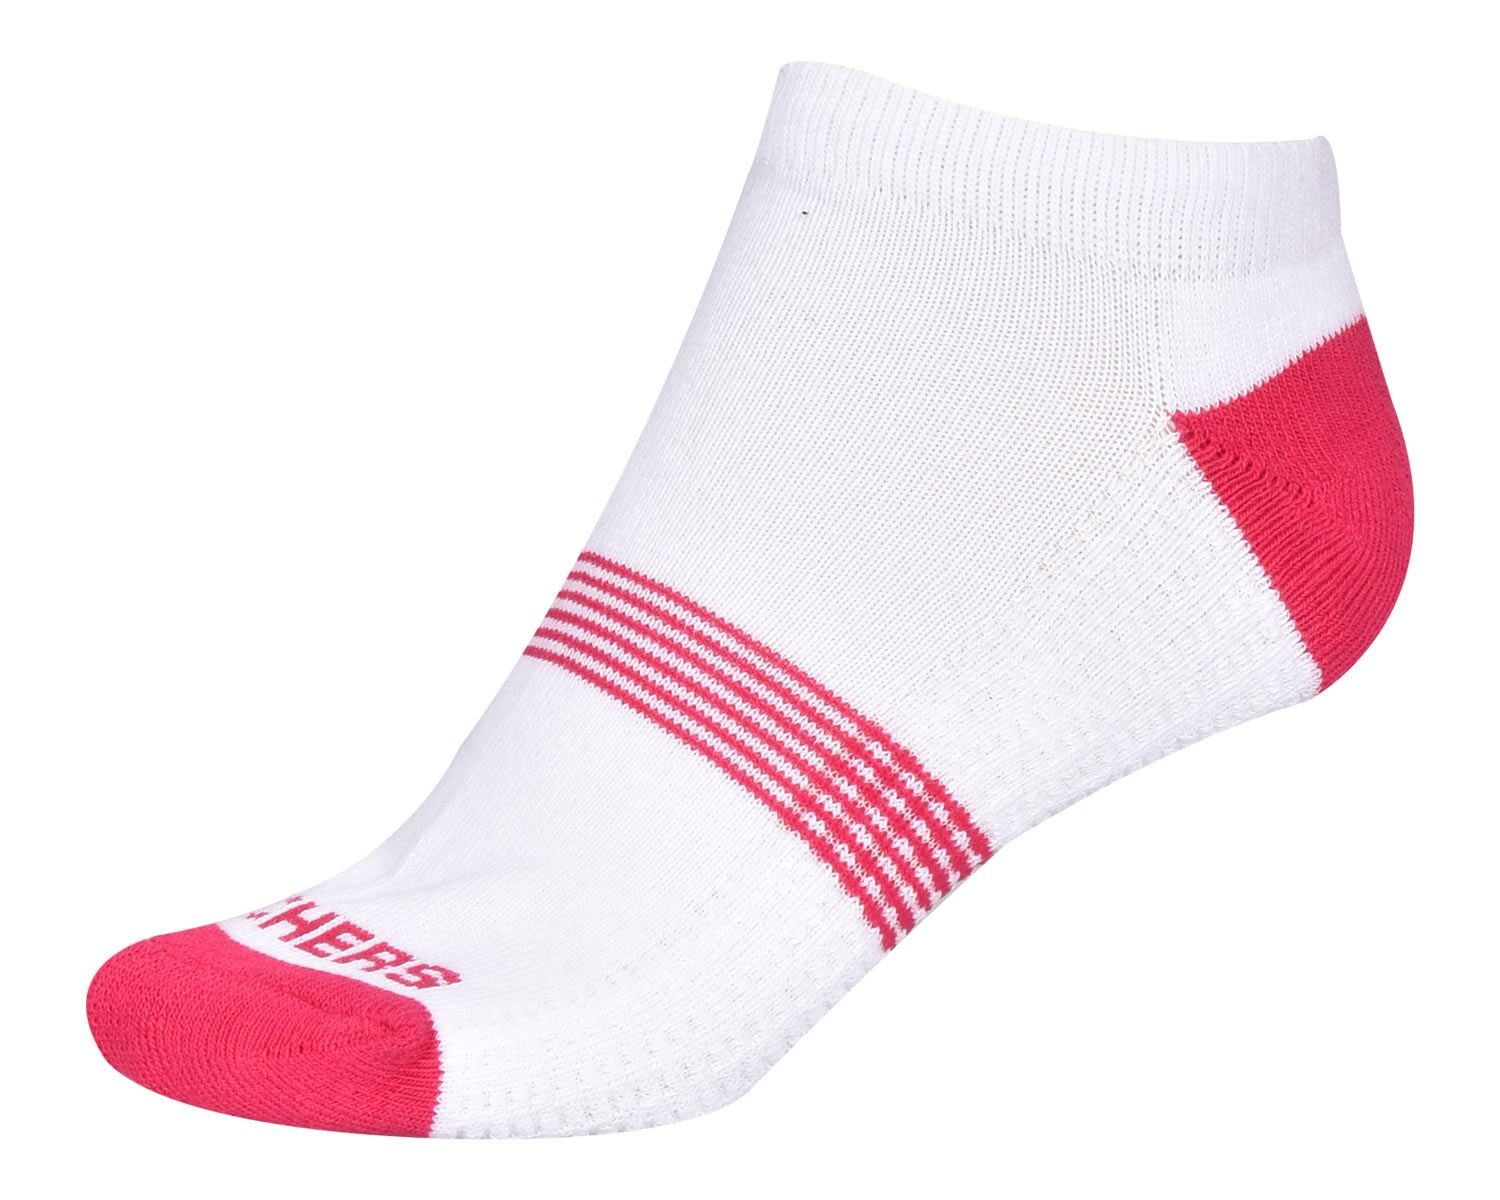 Skechers Womens Ankle Socks Trainers Liner Cushioned Ladies Sports 3 and 5 Pairs